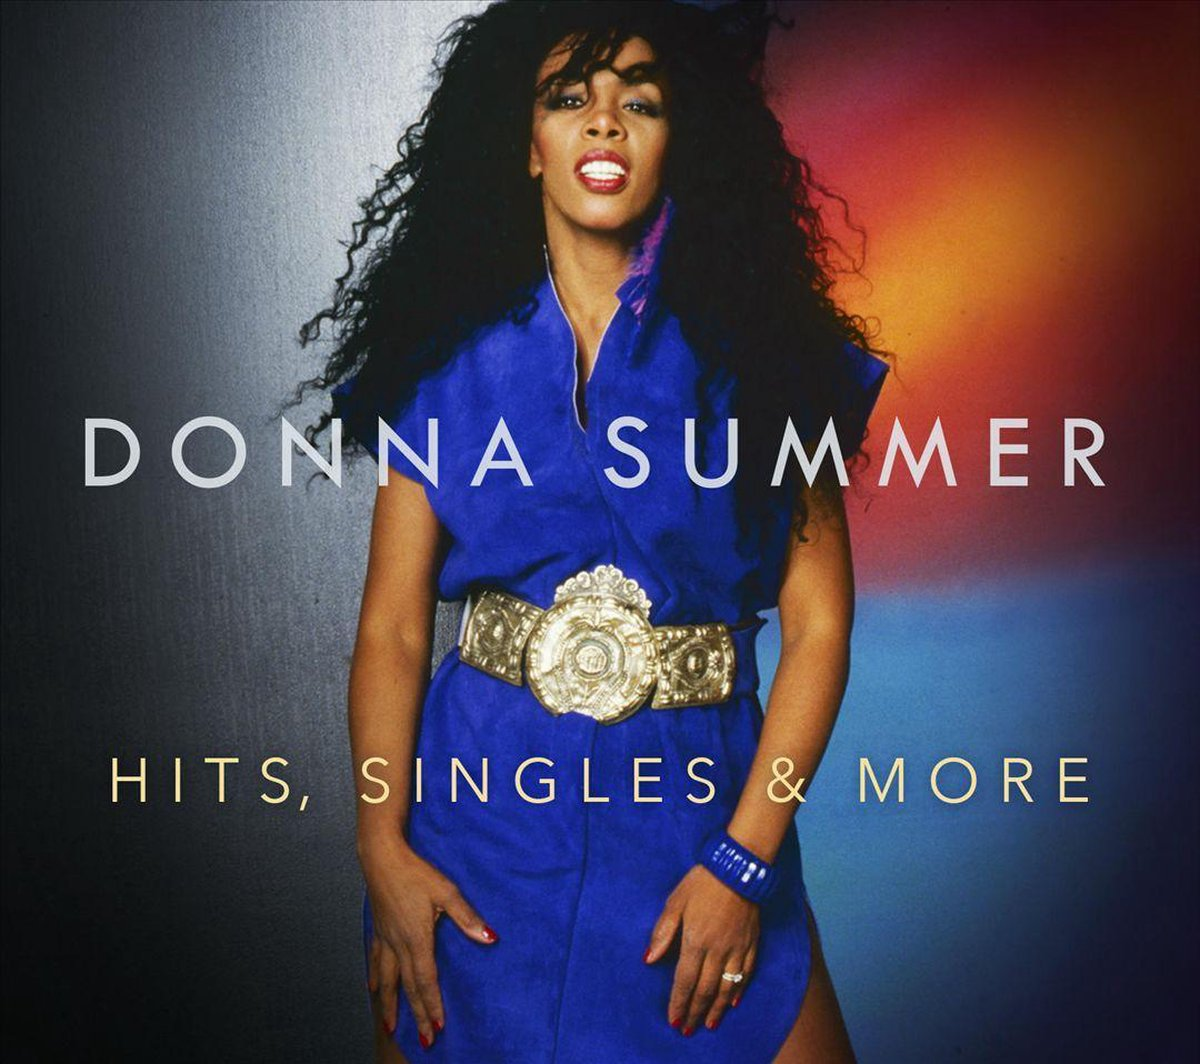 Summer Donna - Hits, Singles & More - Donna Summer